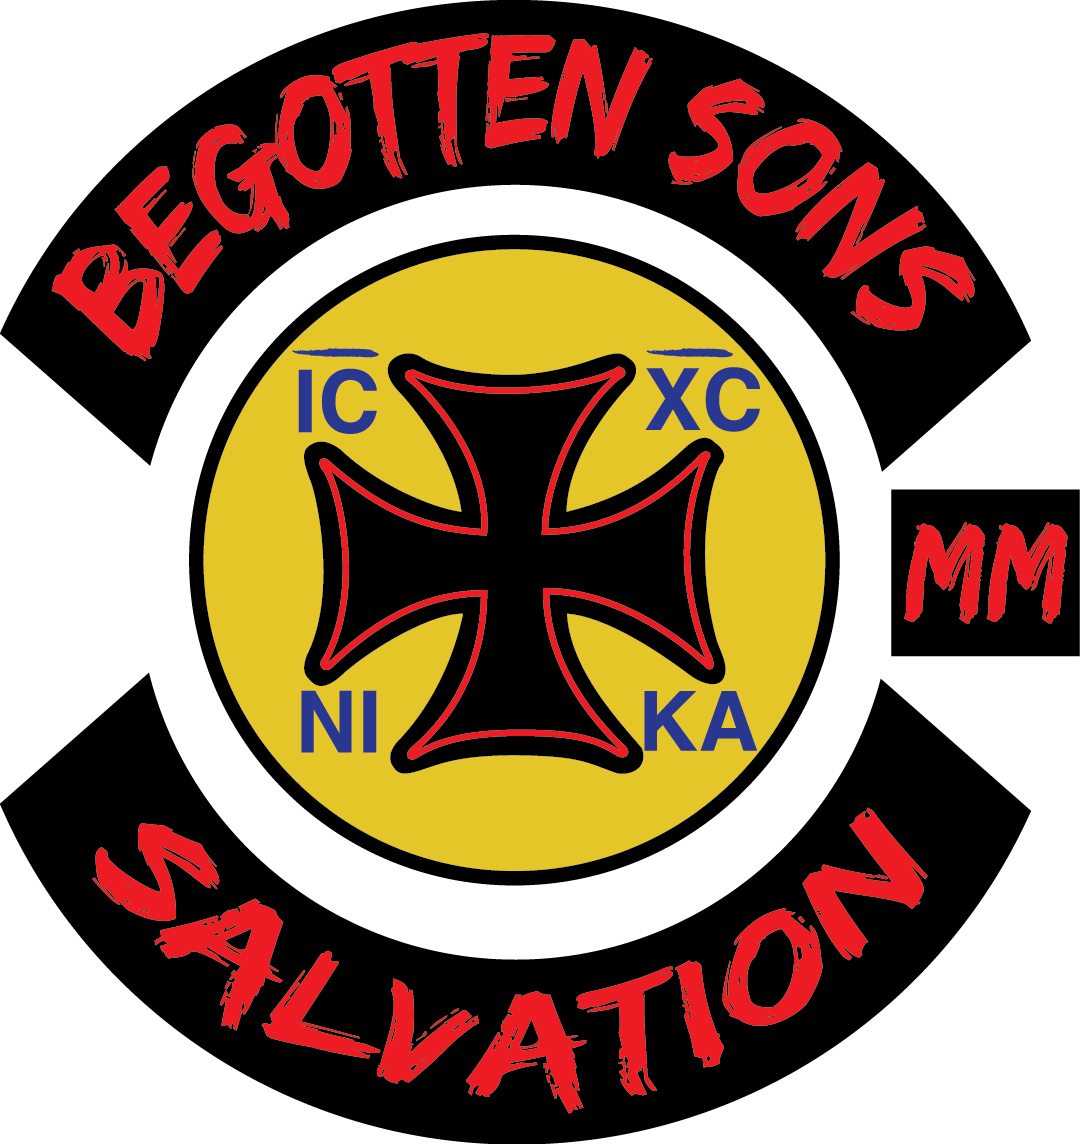 begotten_sons_mm